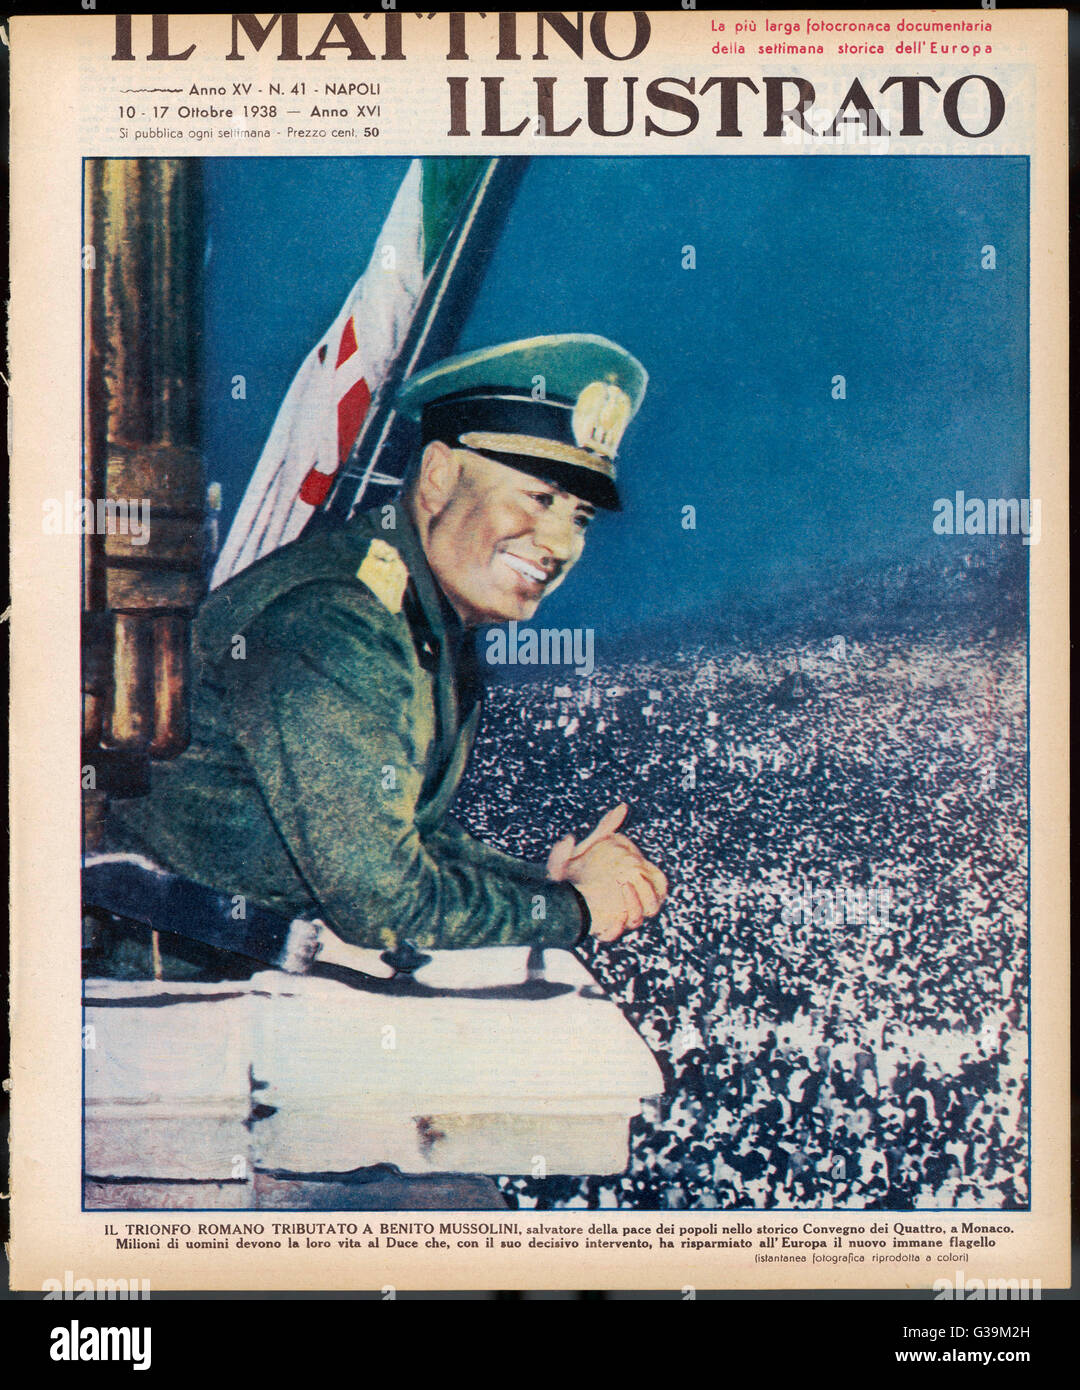 Mussolini returns from Munich  to be applauded as the  'salvatore della pace' who has  saved Europe from - Stock Image